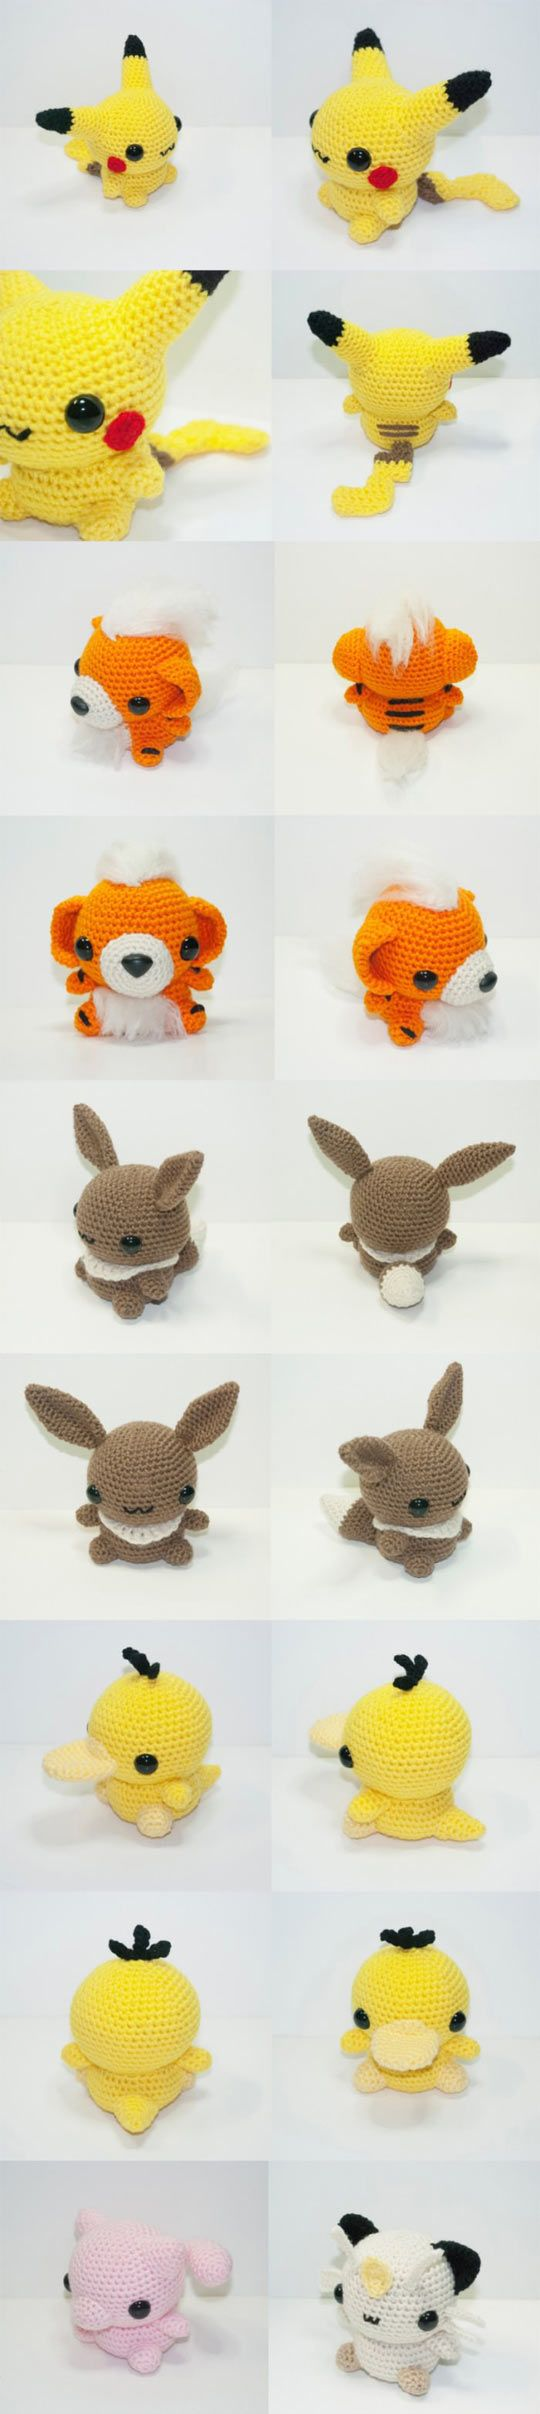 More Pokegurumi! No patterspns, but a talented person could figure them out.